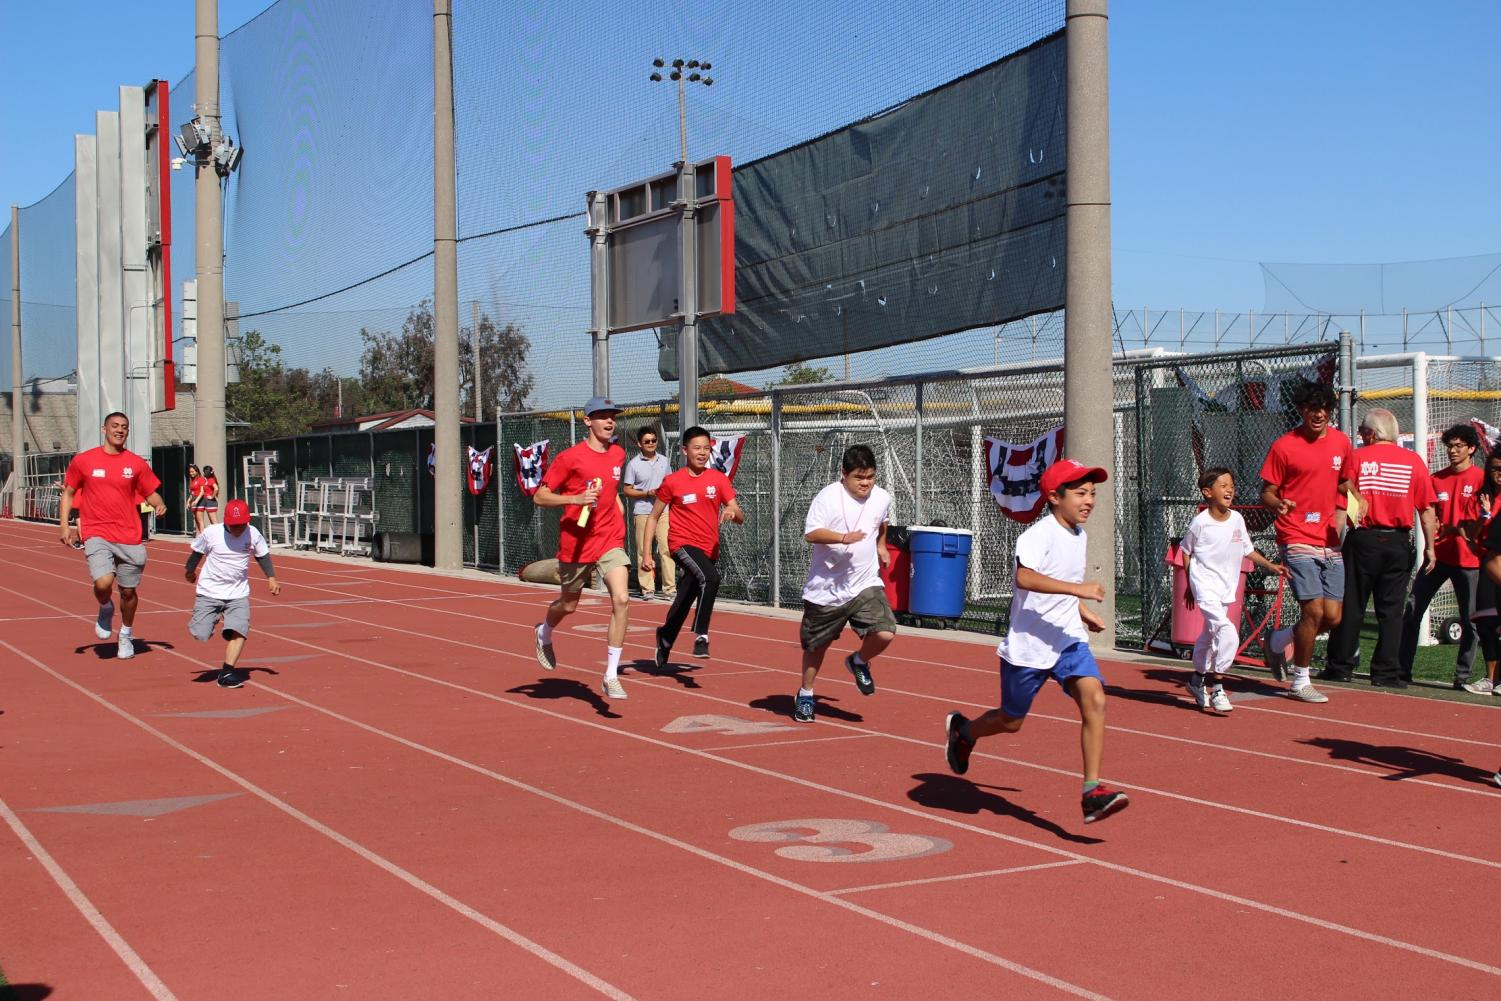 CATCH+YOU+LATER%3A+Along+with+the+many+activities+offered+at+Special+Games%2C+athletes+are+also+able+to+partake+in+is+the+track+event.+%22I+love+seeing+the+smiles+on+the+athlete%27s+face+after+the+track+event.+It+is+most+athletes%27+favorite+event%2C%22+senior+and+director+Maisie+McPherson+said.+%22Everyone+is+so+positive+after+and+the+speeches+at+the+award+stand+are+definitely+memorable.%22